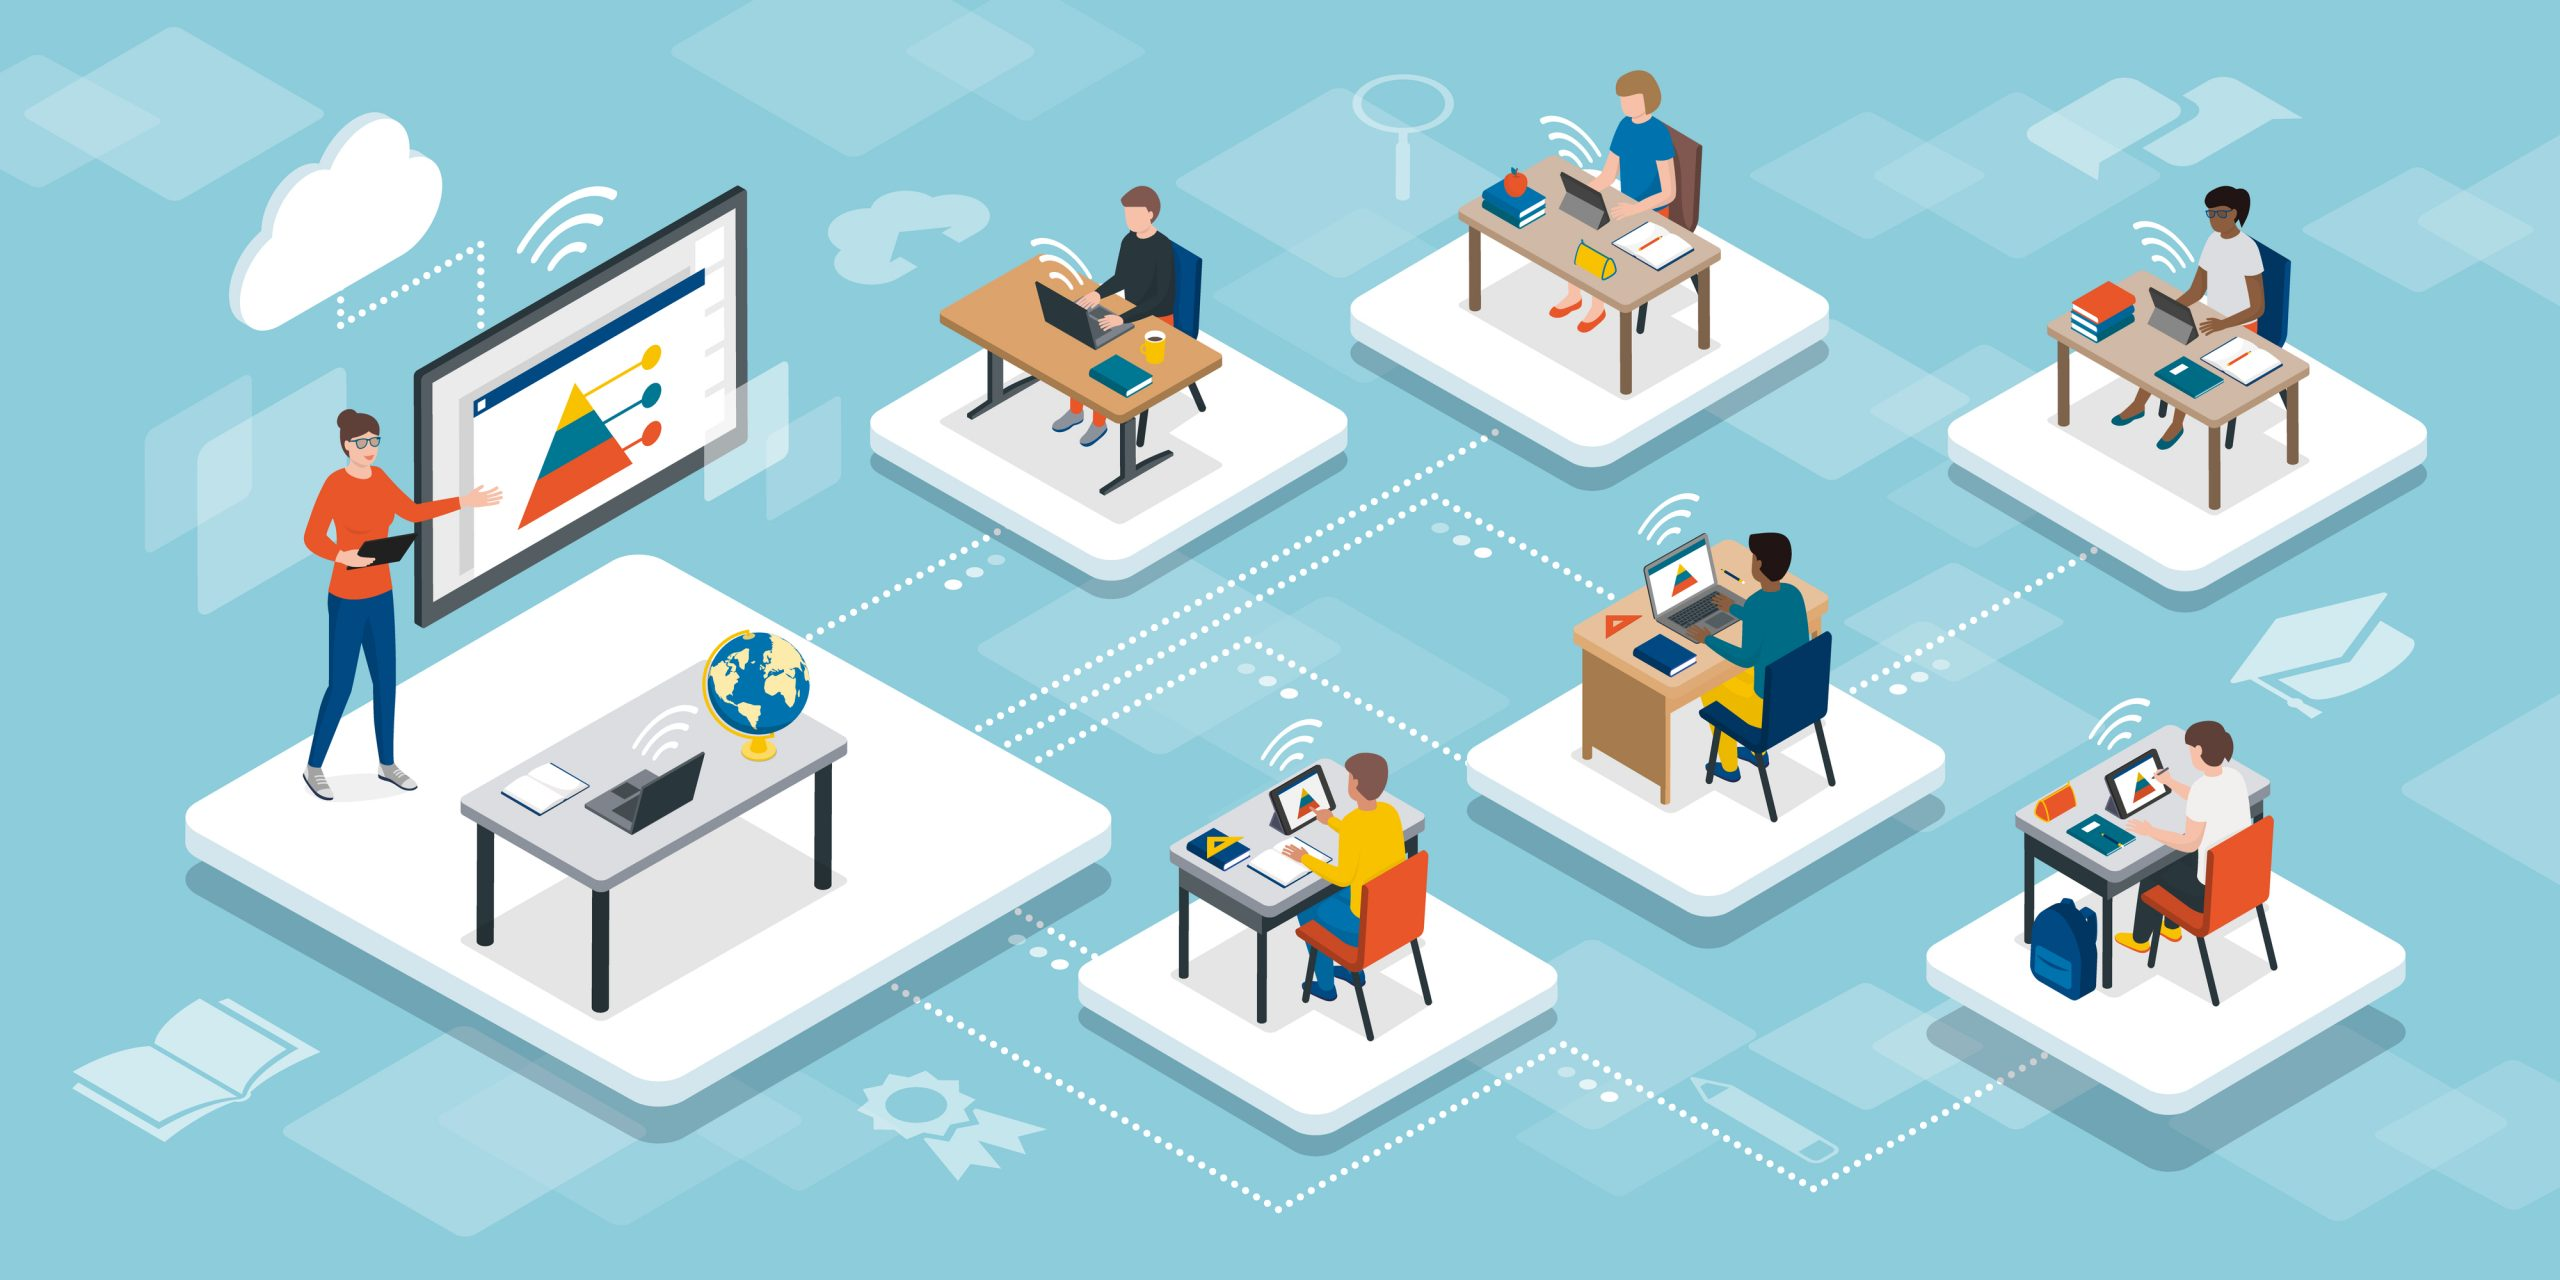 Remote teaching: A practical guide with tools, tips and techniques